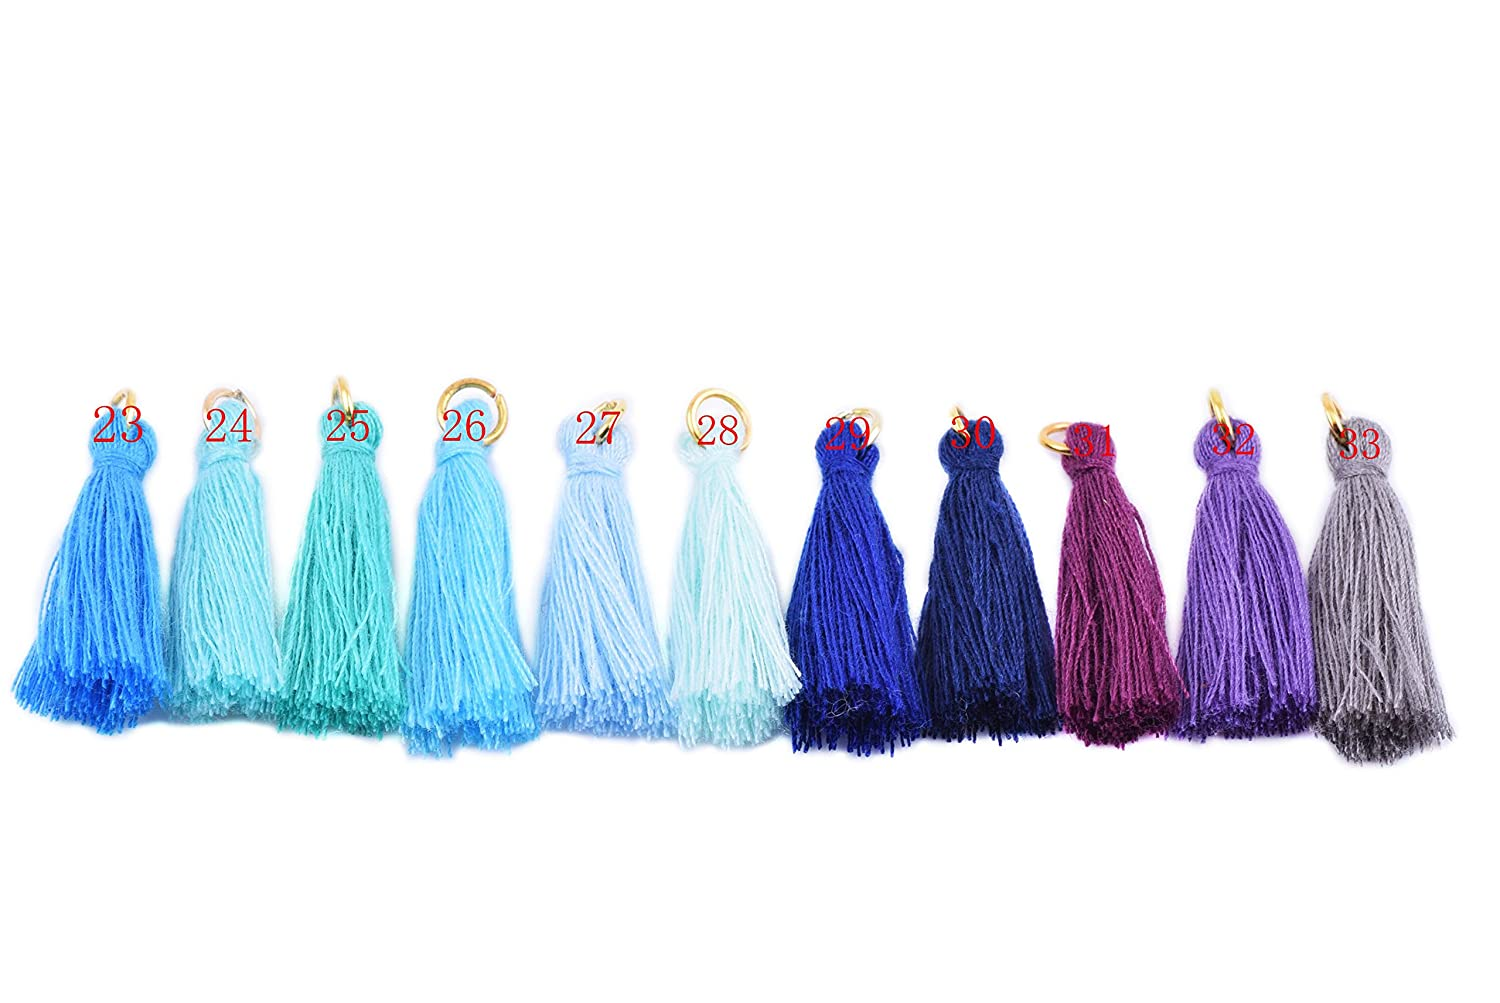 Navy 3.5cm KONMAY 50PCS 1.4 Soft Handmade Silky Tiny Craft Tassels With Golden Jump Ring for DIY Projects